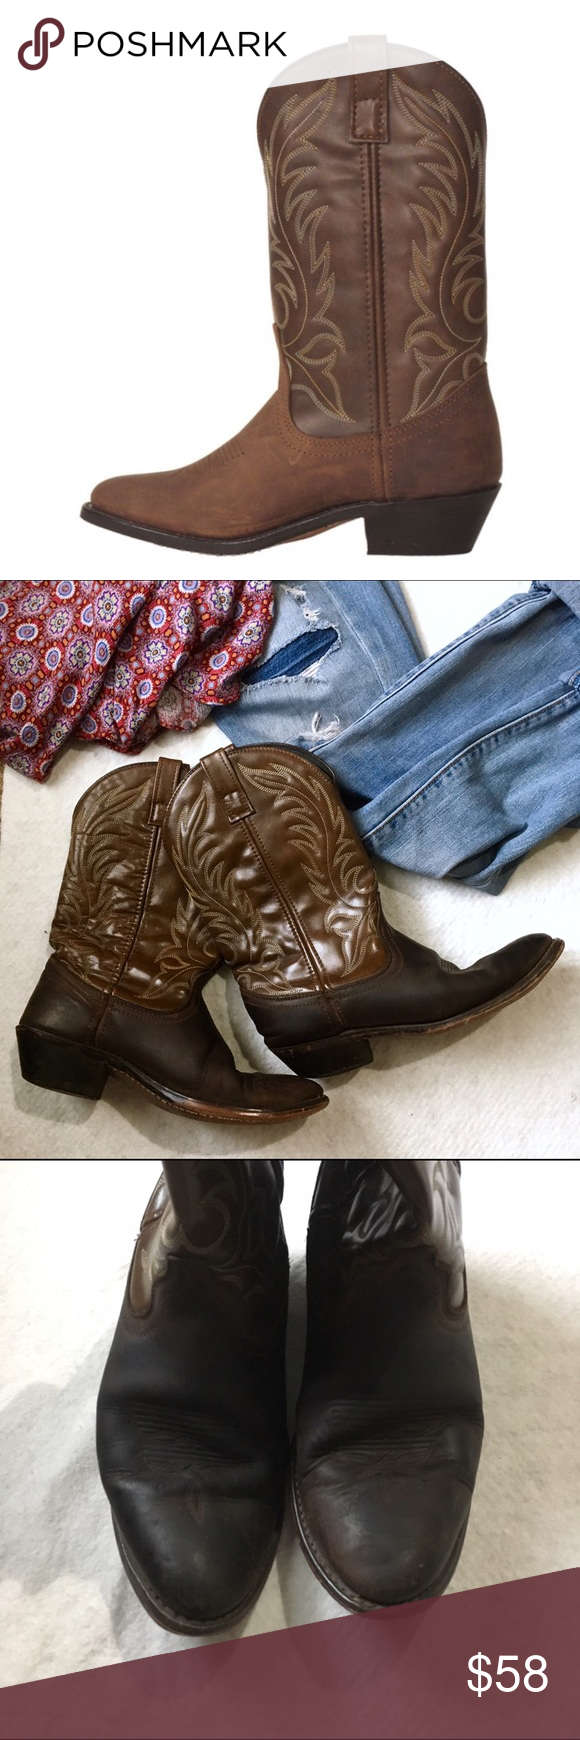 """Laredo Kadi women's cowboy boots Fashionable, distressed, western boots featuring decorative stitching, a rounded toe and a standard cowboy-boot heel.  western-style heel 11"""" shaft height decorative stitching on shaft round toe cushioned insole Laredo Shoes Heeled Boots"""